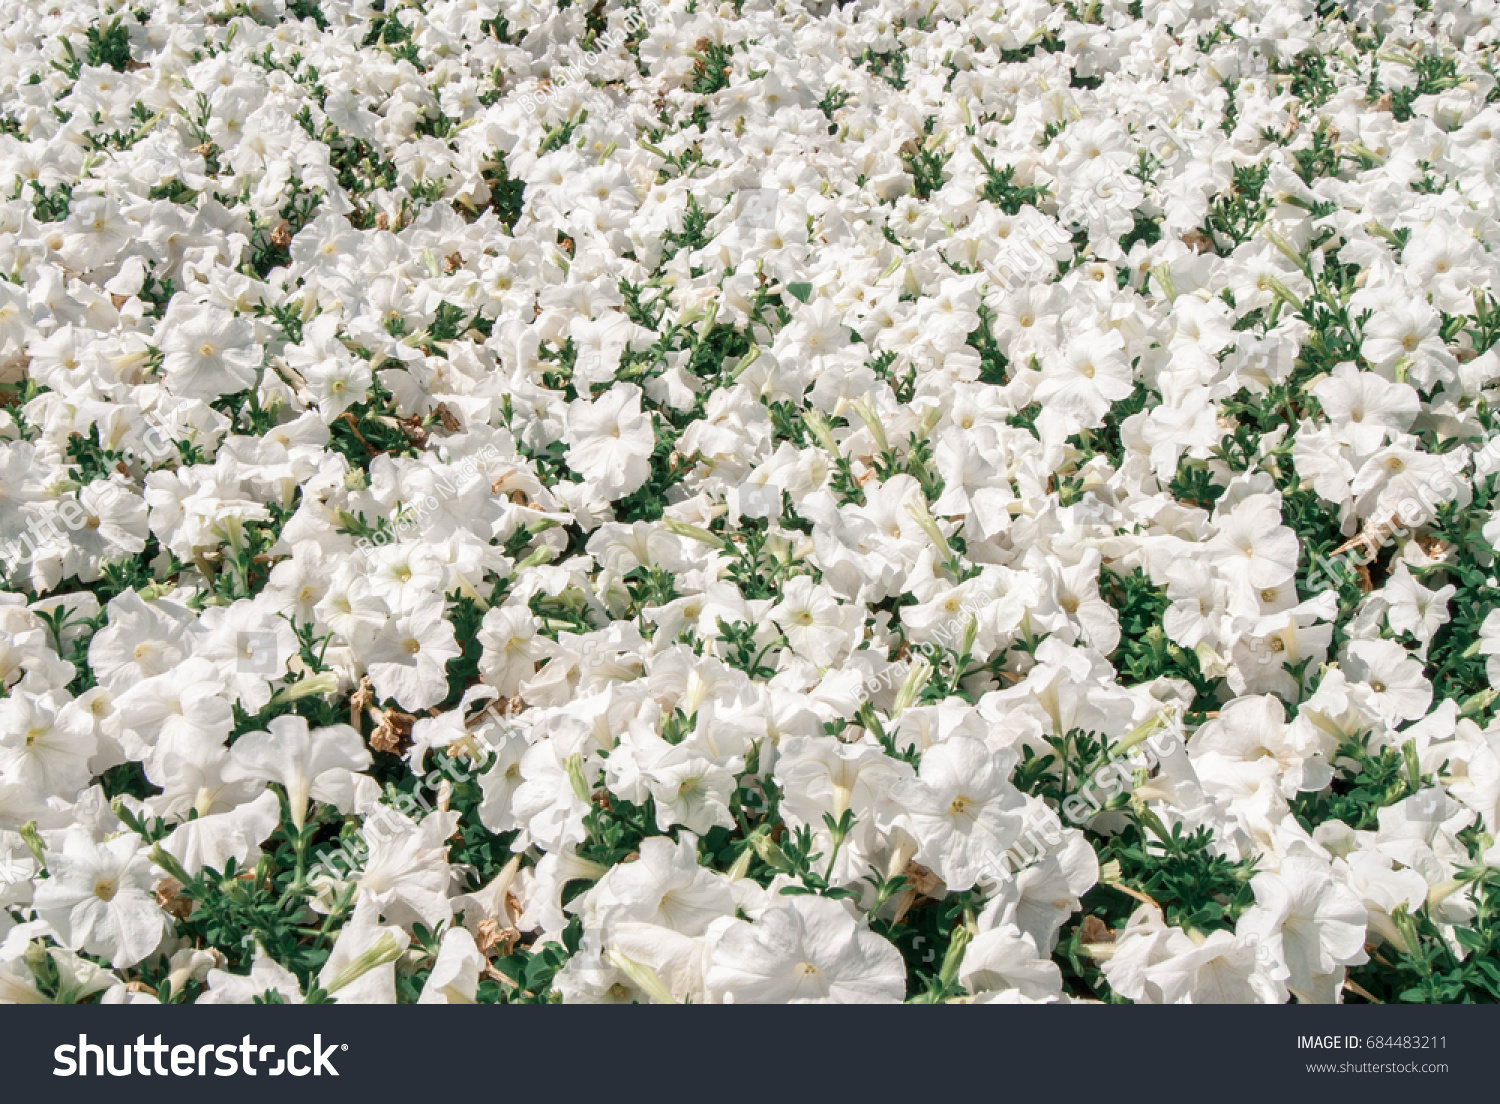 Delicate White Flowers Stock Photo Edit Now 684483211 Shutterstock